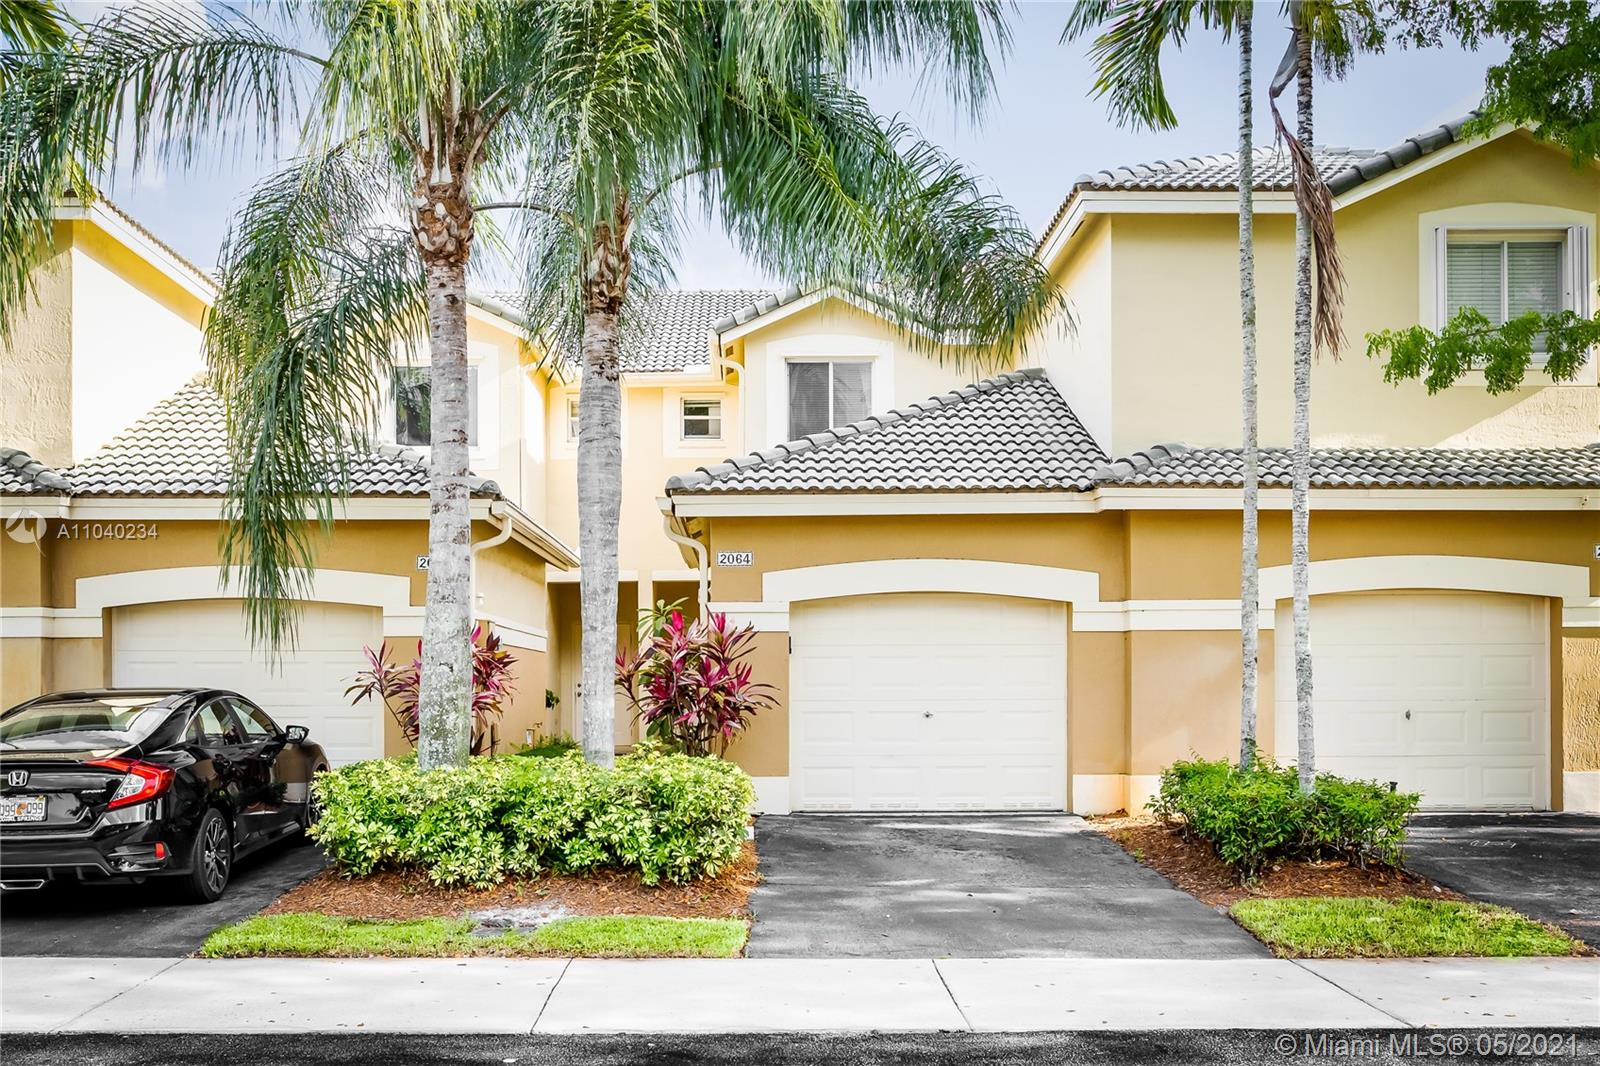 Beautiful townhouse in San Mateo in Weston. Biggest 2 bed, 2.5 baths model, oversized master bedroom, laundry inside AC area, laminated floors and carpet. Awesome gated community, amazing schools, great location very close to I-75 and Route 27. It wont last!